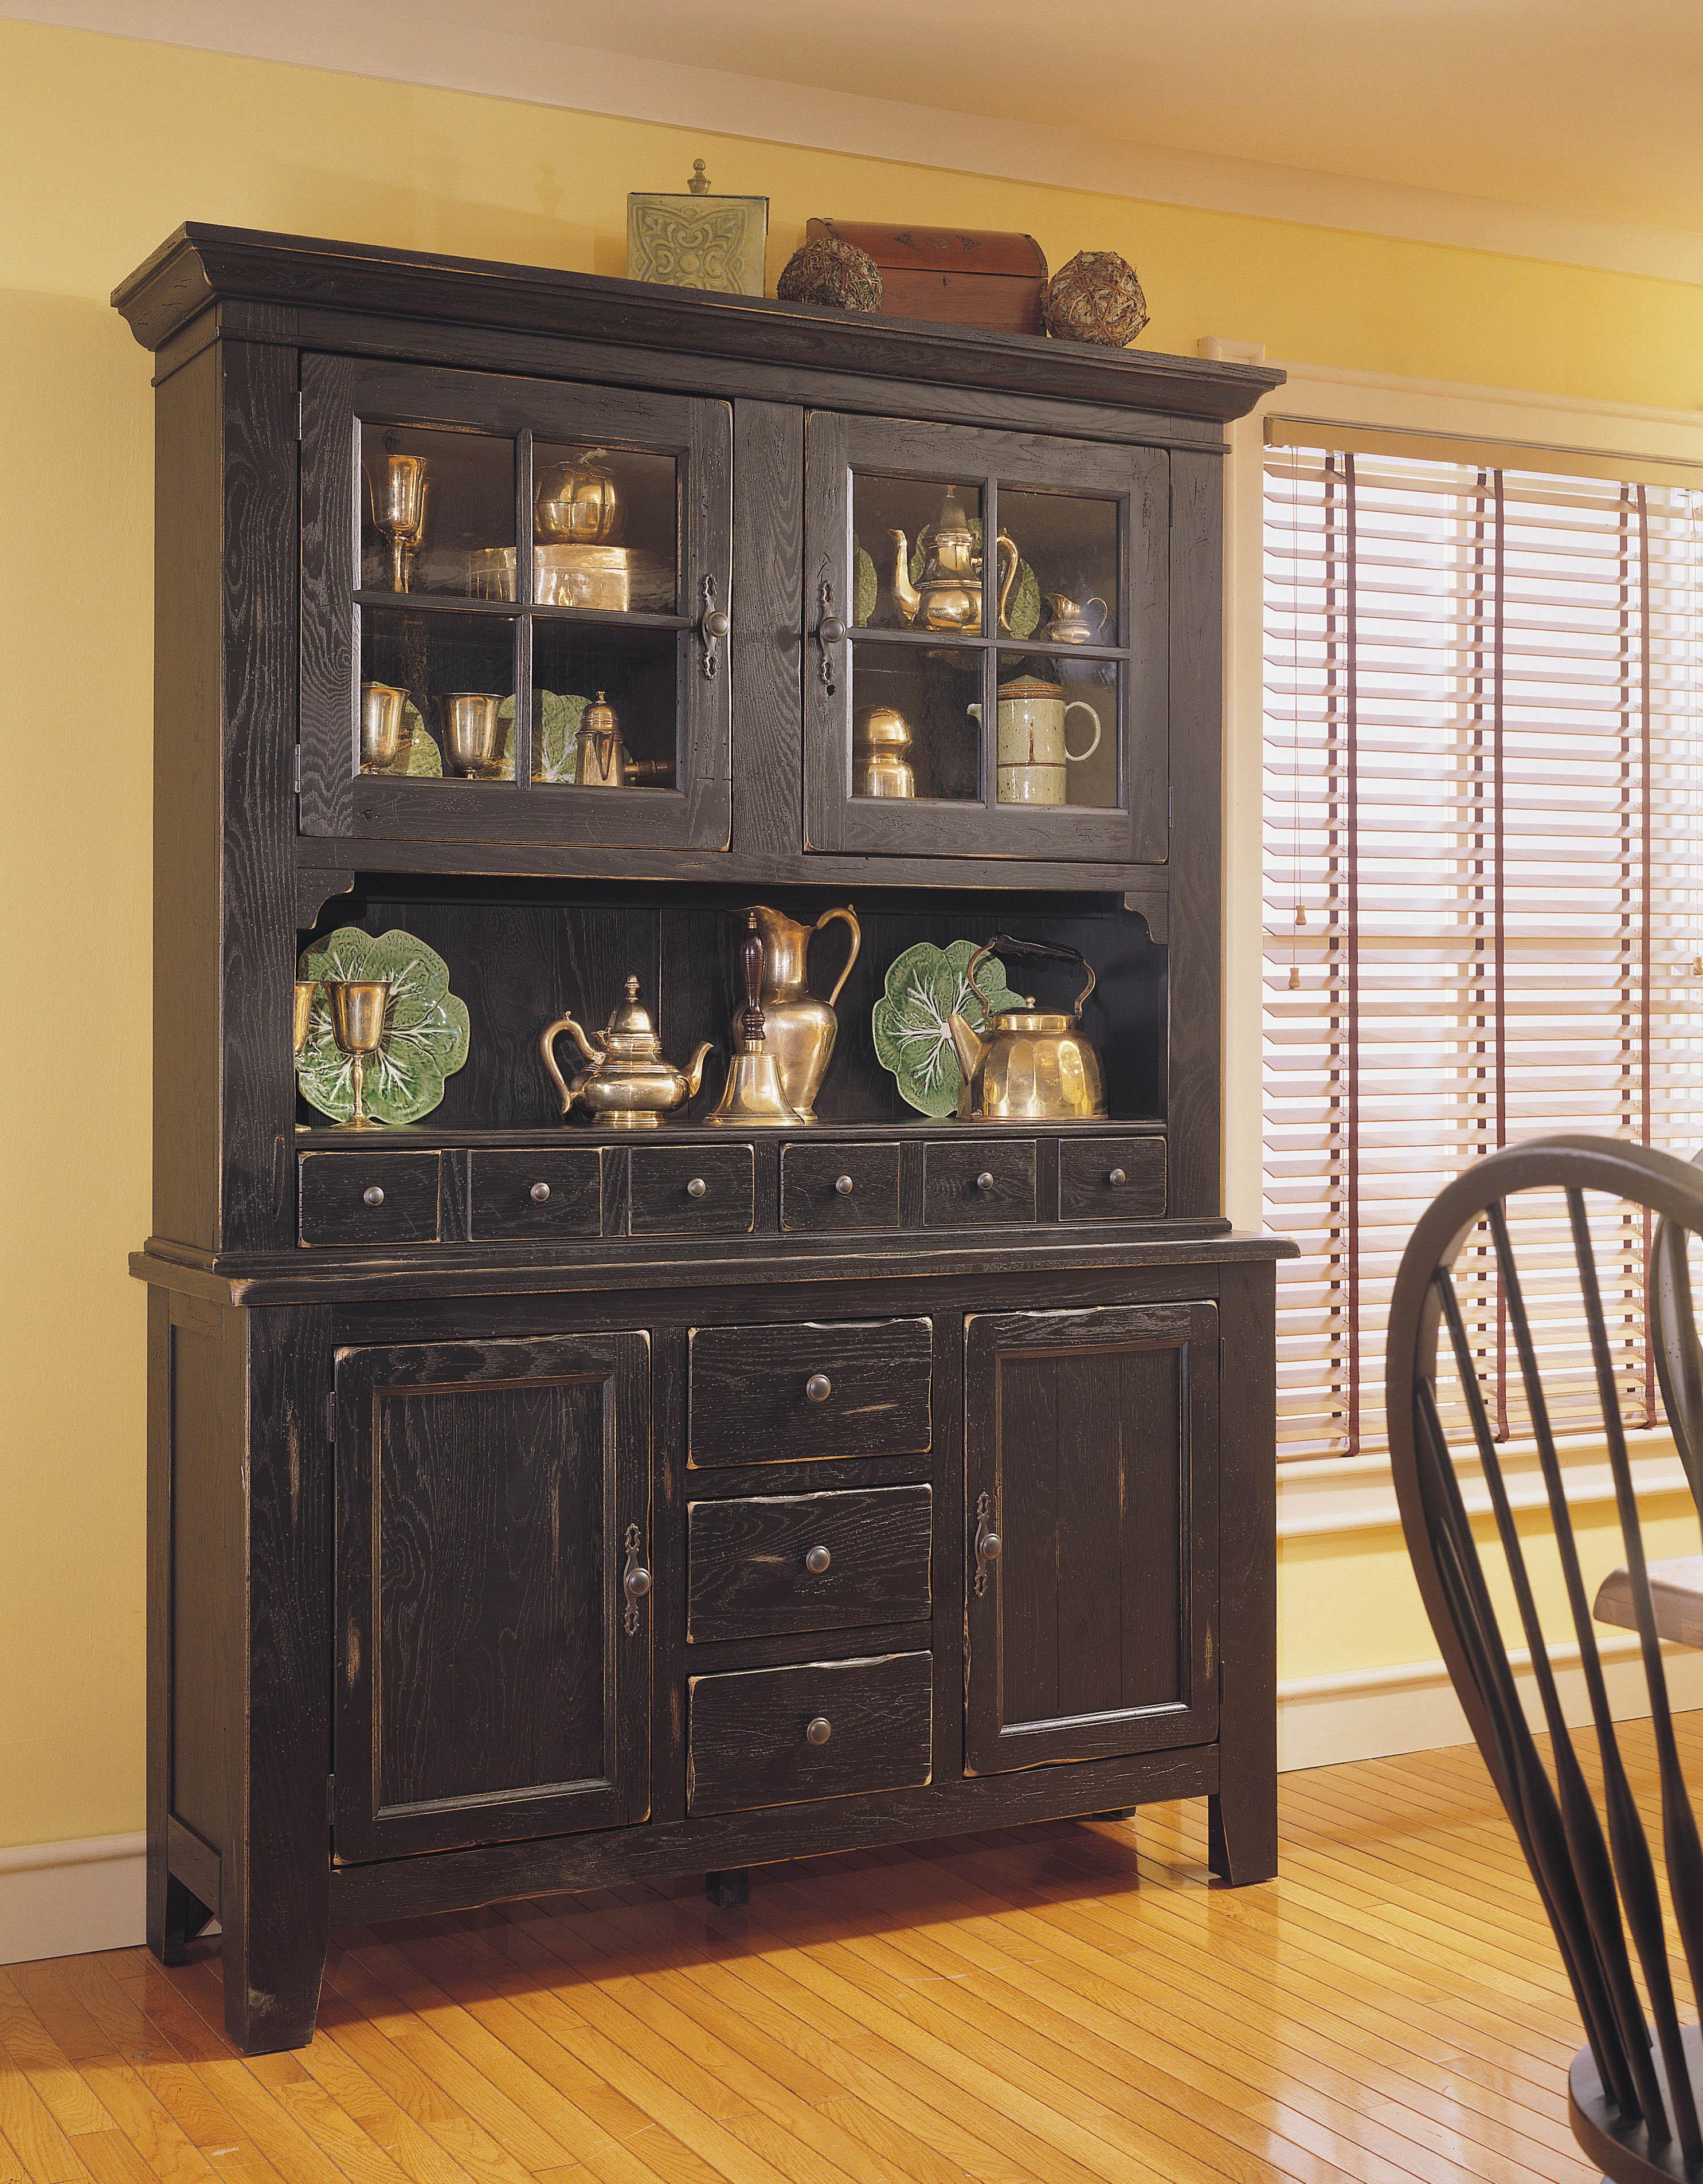 Broyhill Attic Heirlooms China Cabinet